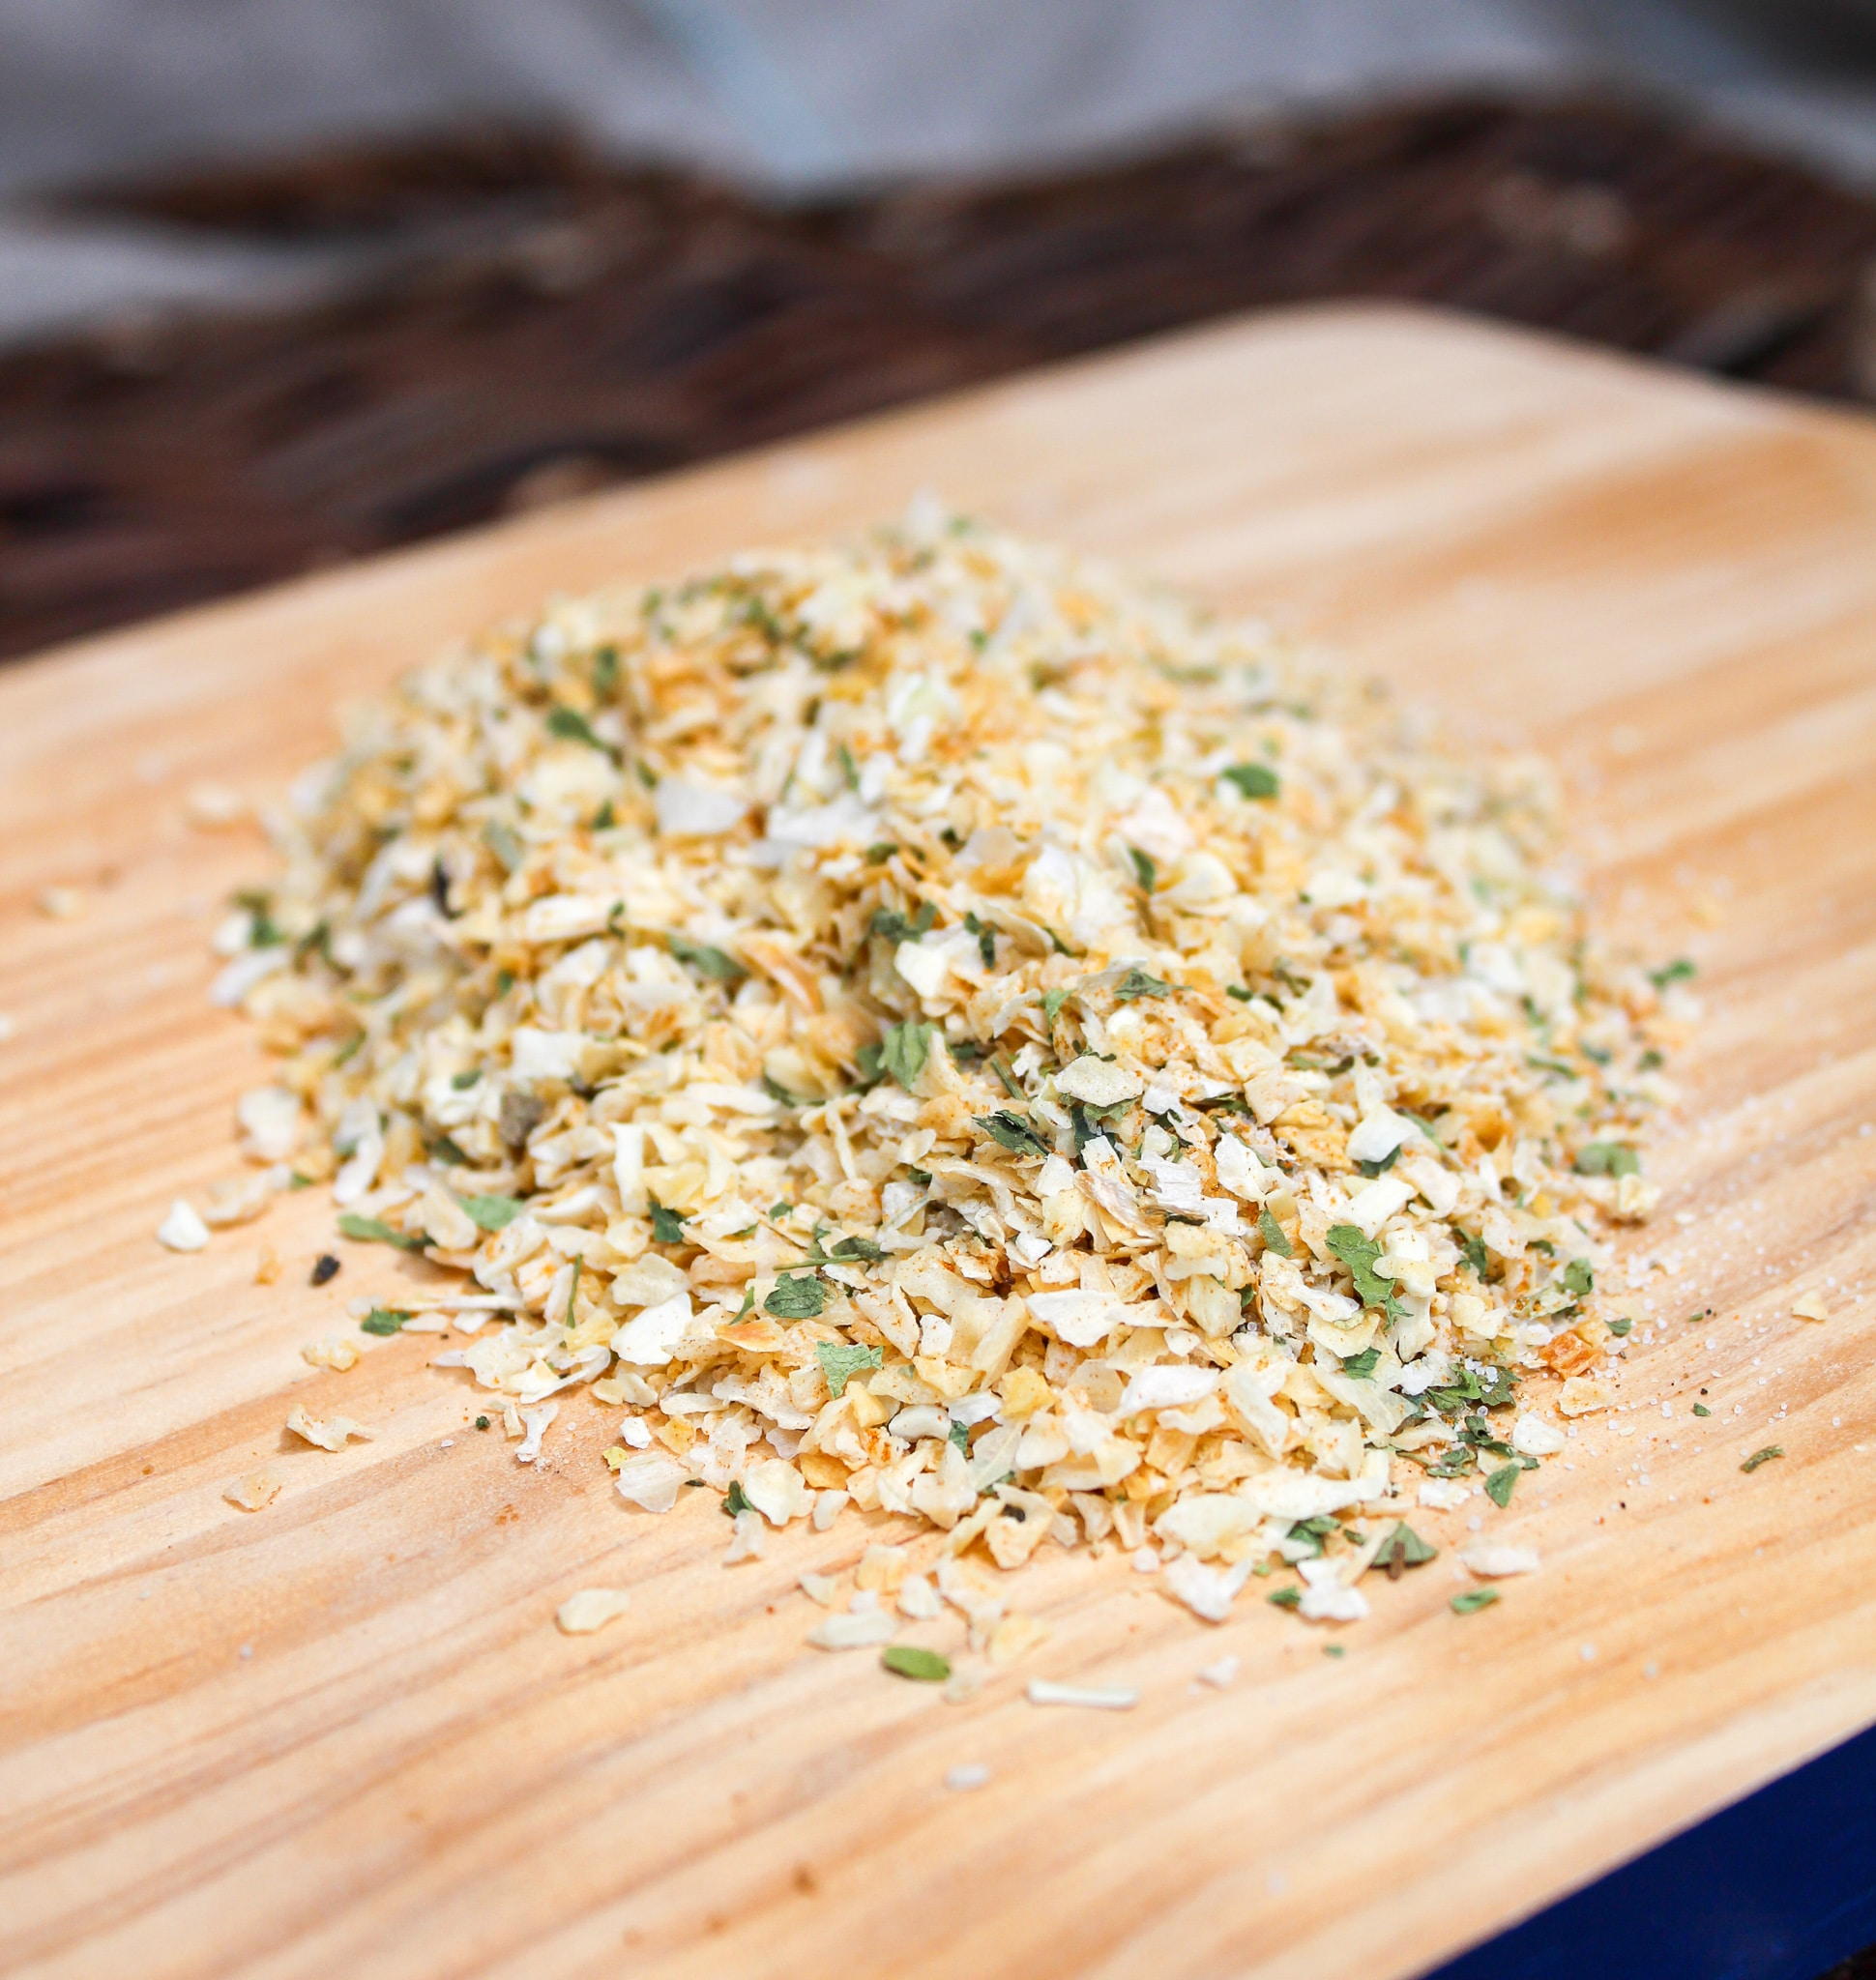 onion seasoning on a cutting board